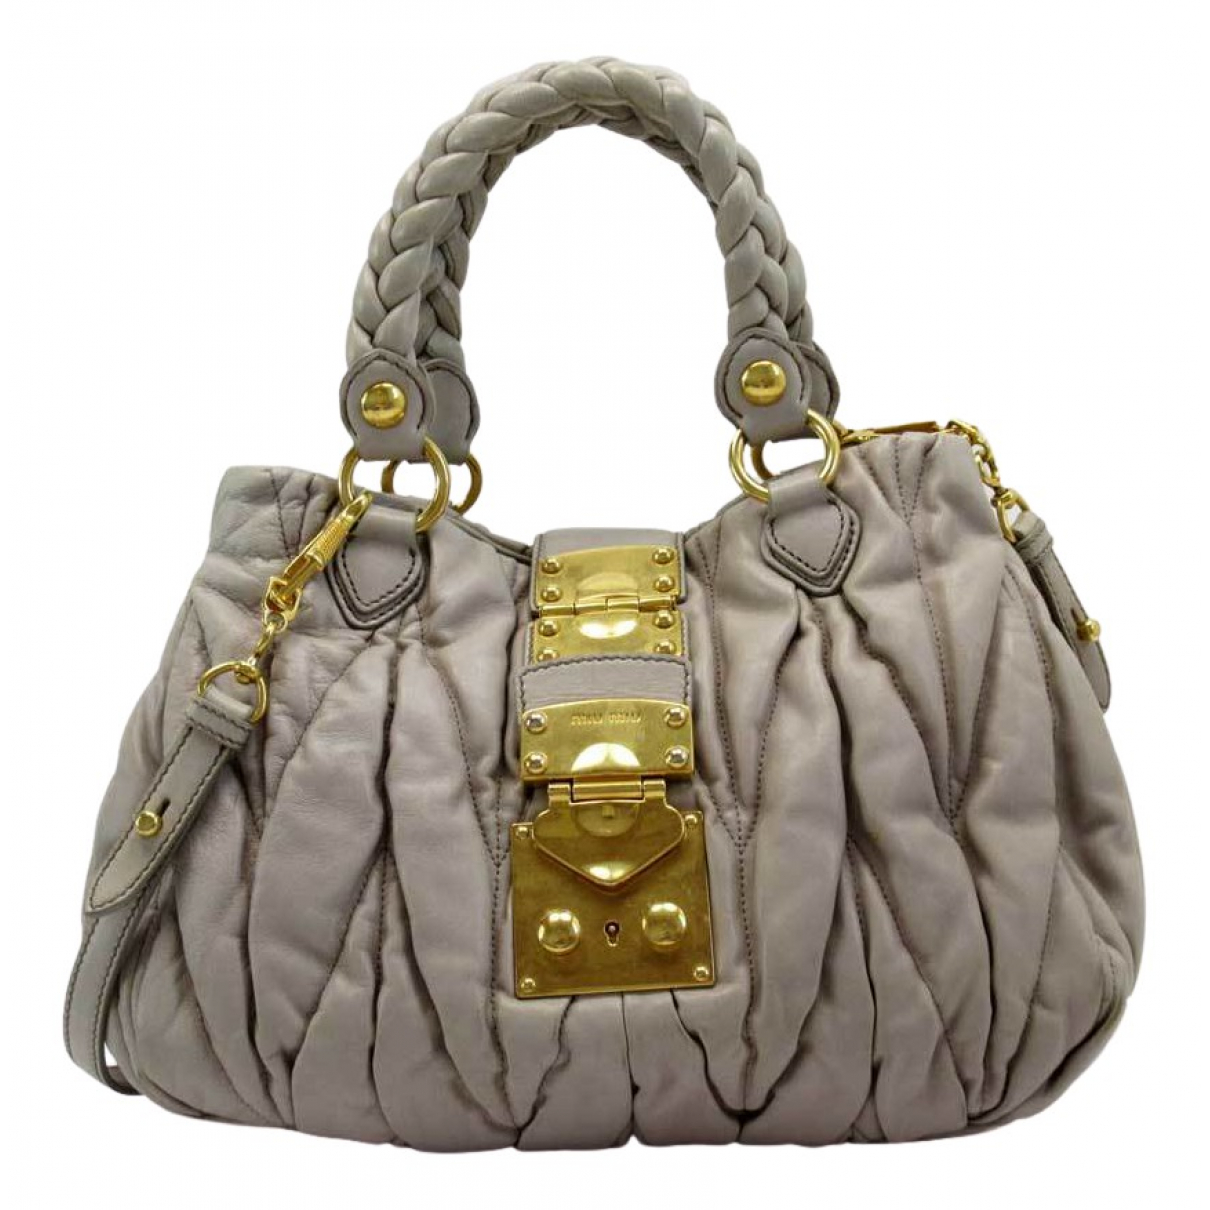 Miu Miu Matelassé Beige Leather handbag for Women \N